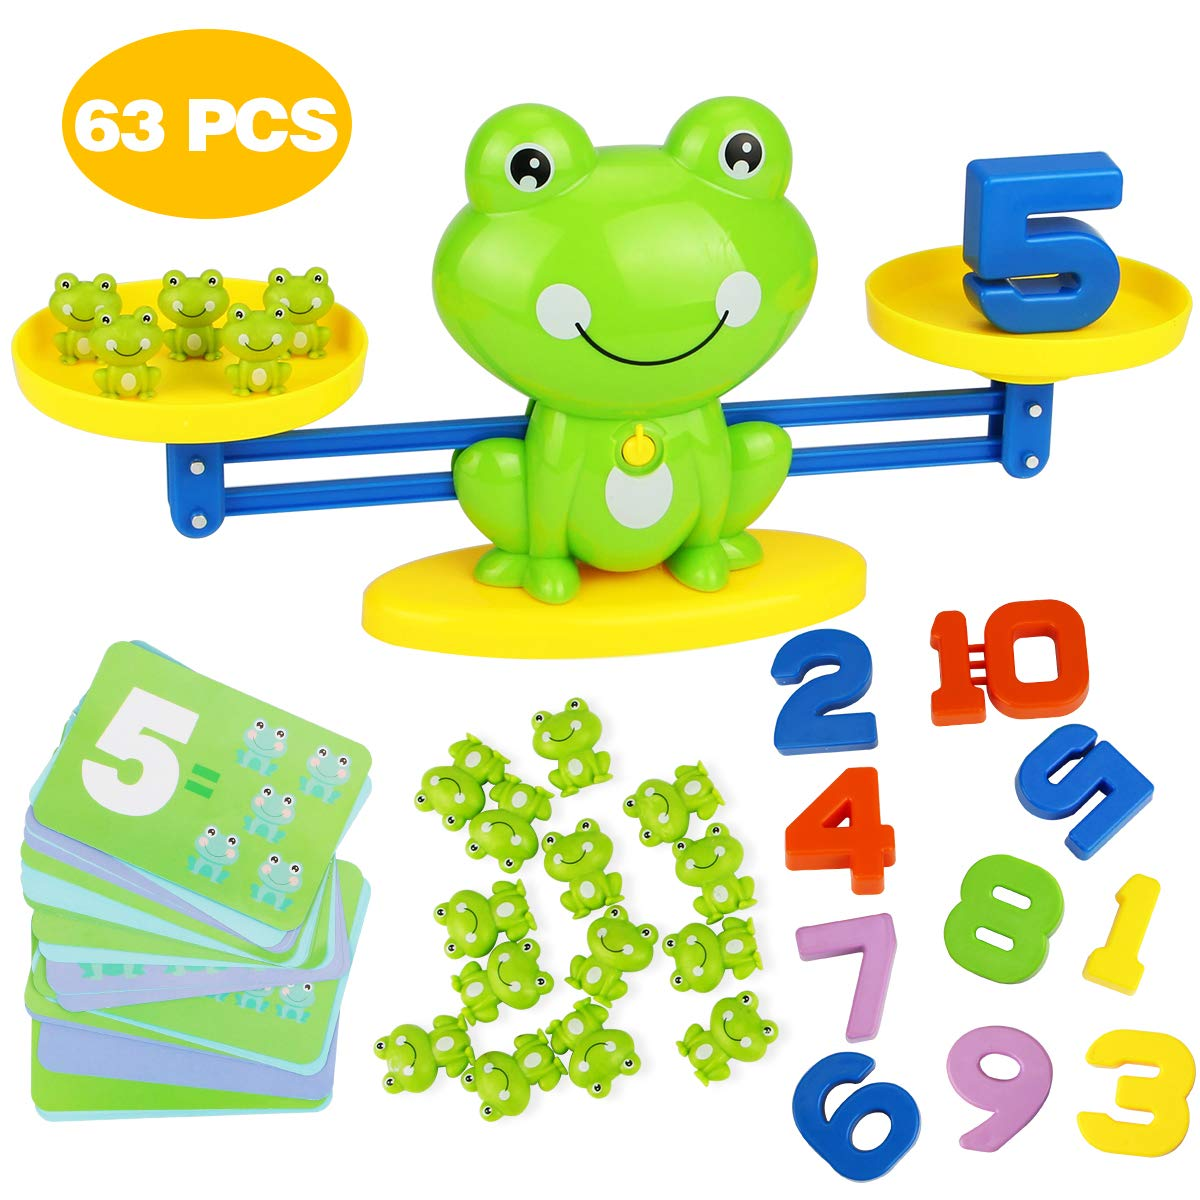 Aitbay Counting Educational Childrens Learning